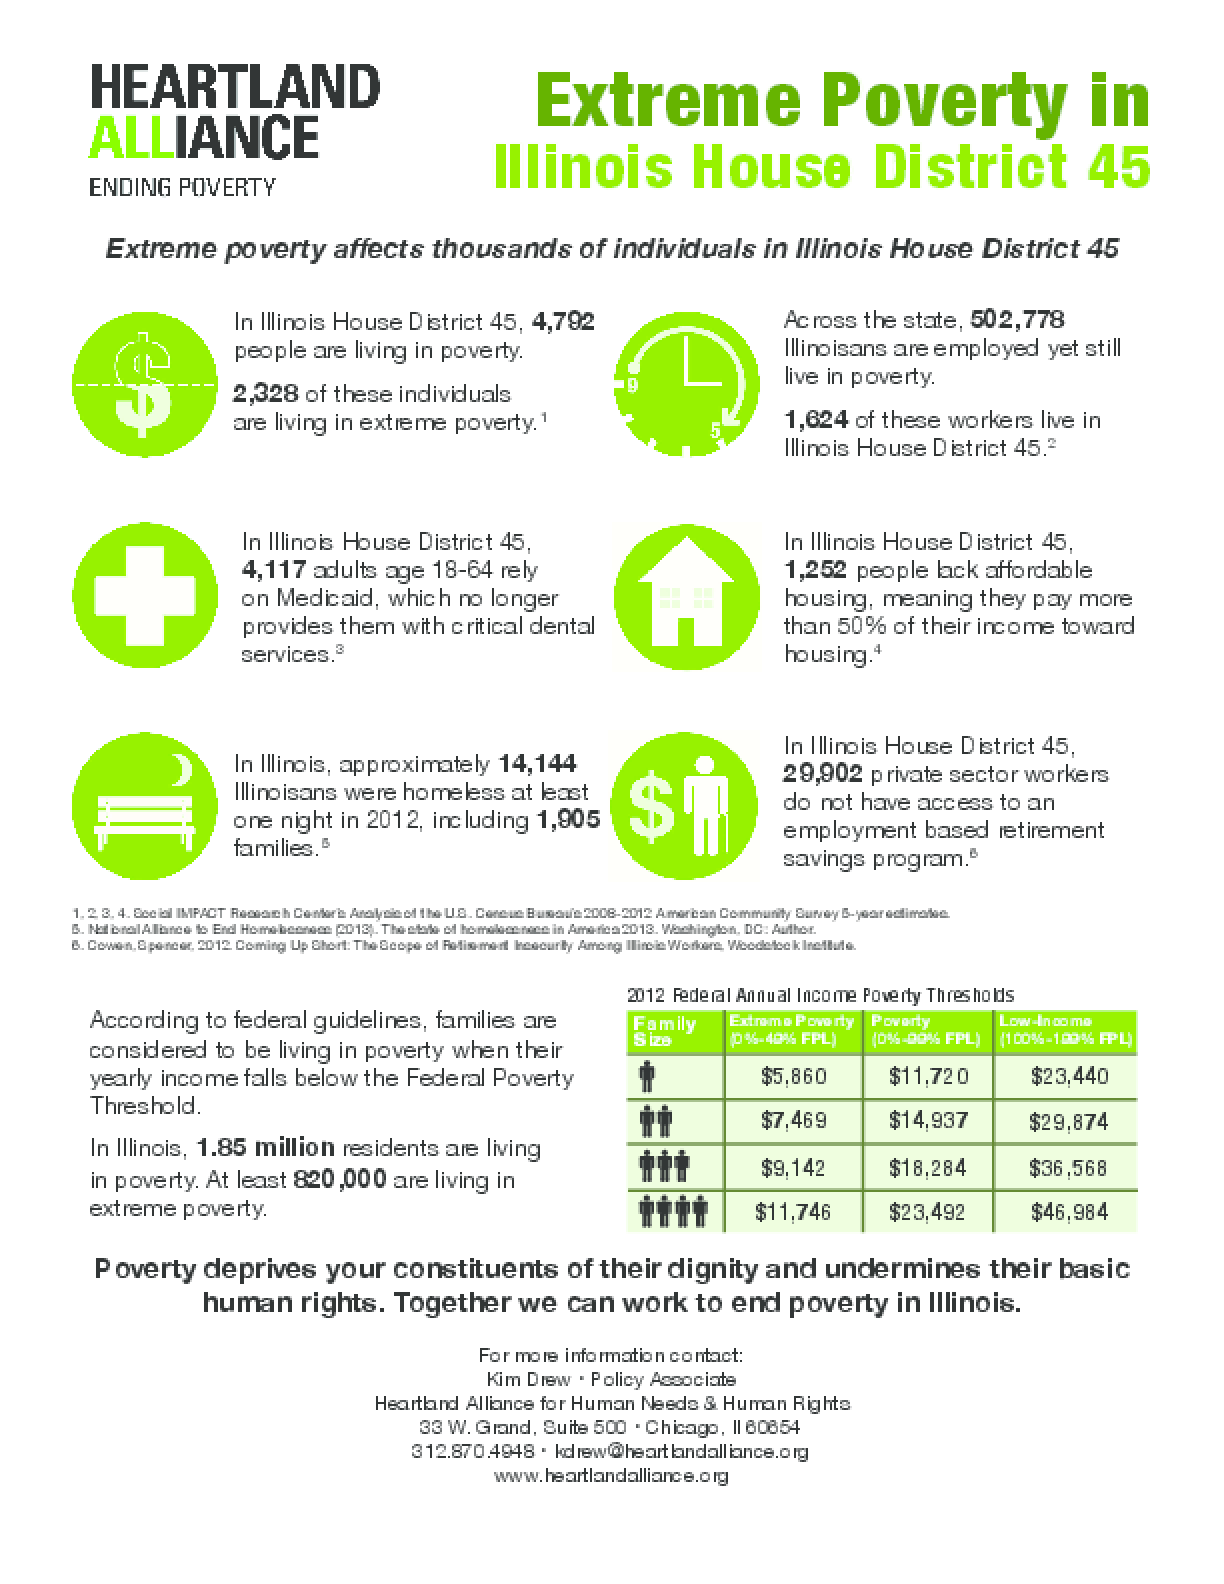 Poverty Fact Sheets for Illinois House District 45